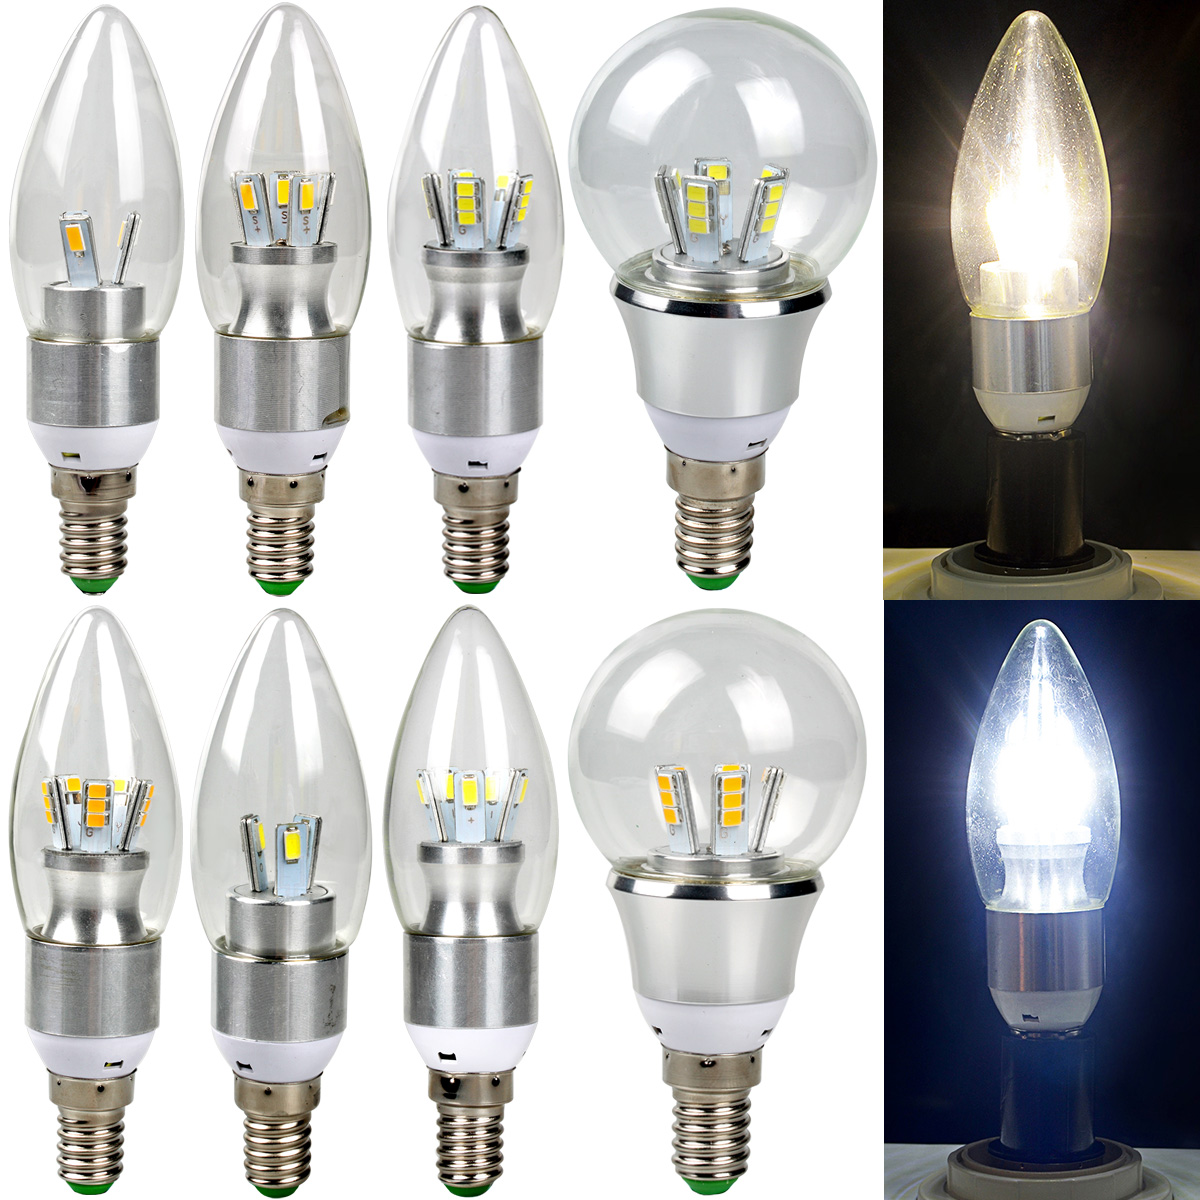 e27 e14 g9 5730 5630 4014 smd led edison filament ma s ampoule lampe bulb 2w 30w ebay. Black Bedroom Furniture Sets. Home Design Ideas